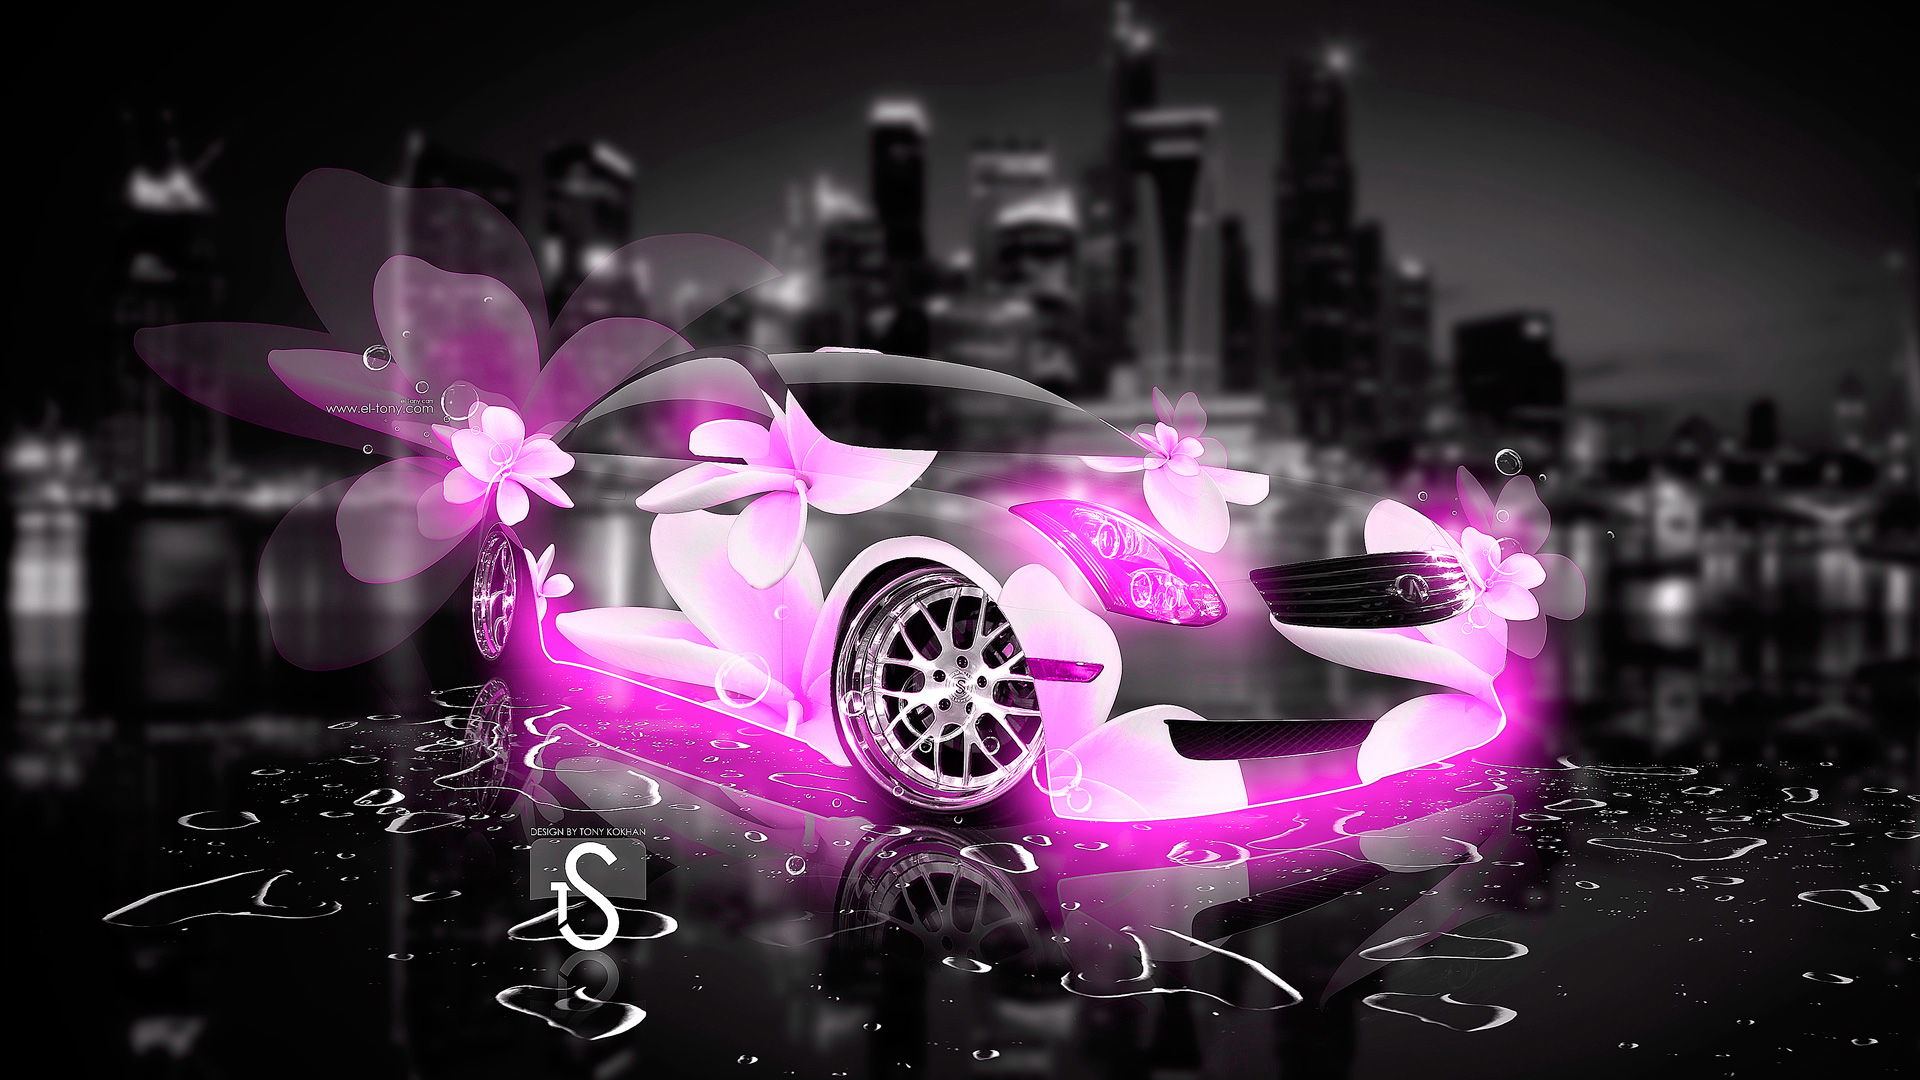 Delicieux Infiniti G35 Fantasy Pink Flowers City Car 2013